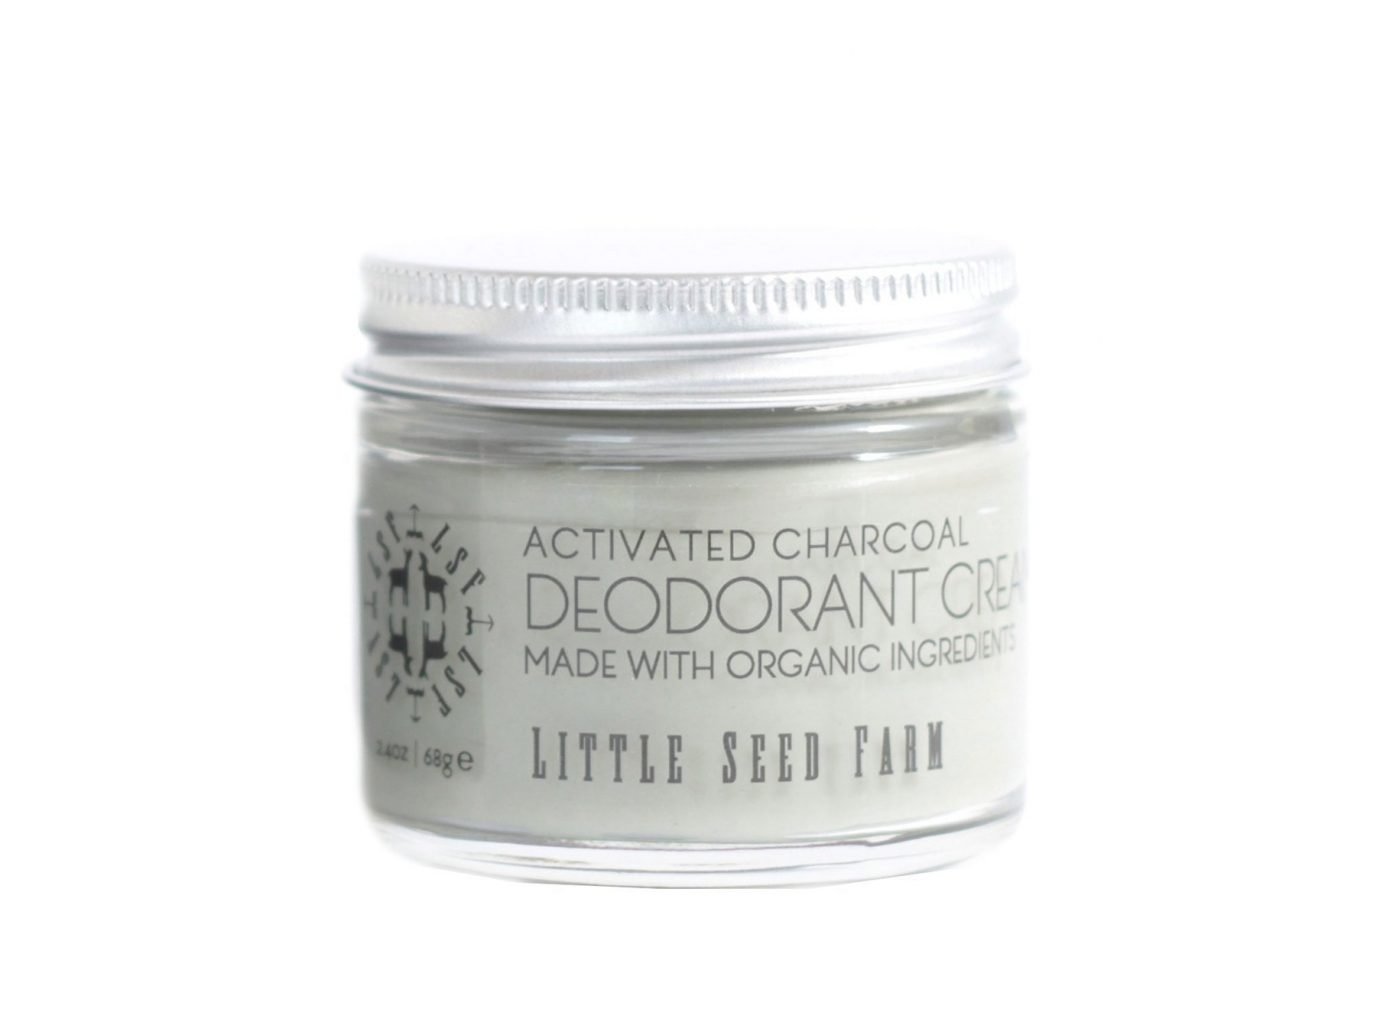 Little Seed Farm Natural Deodorant Cream: Activated Charcoal